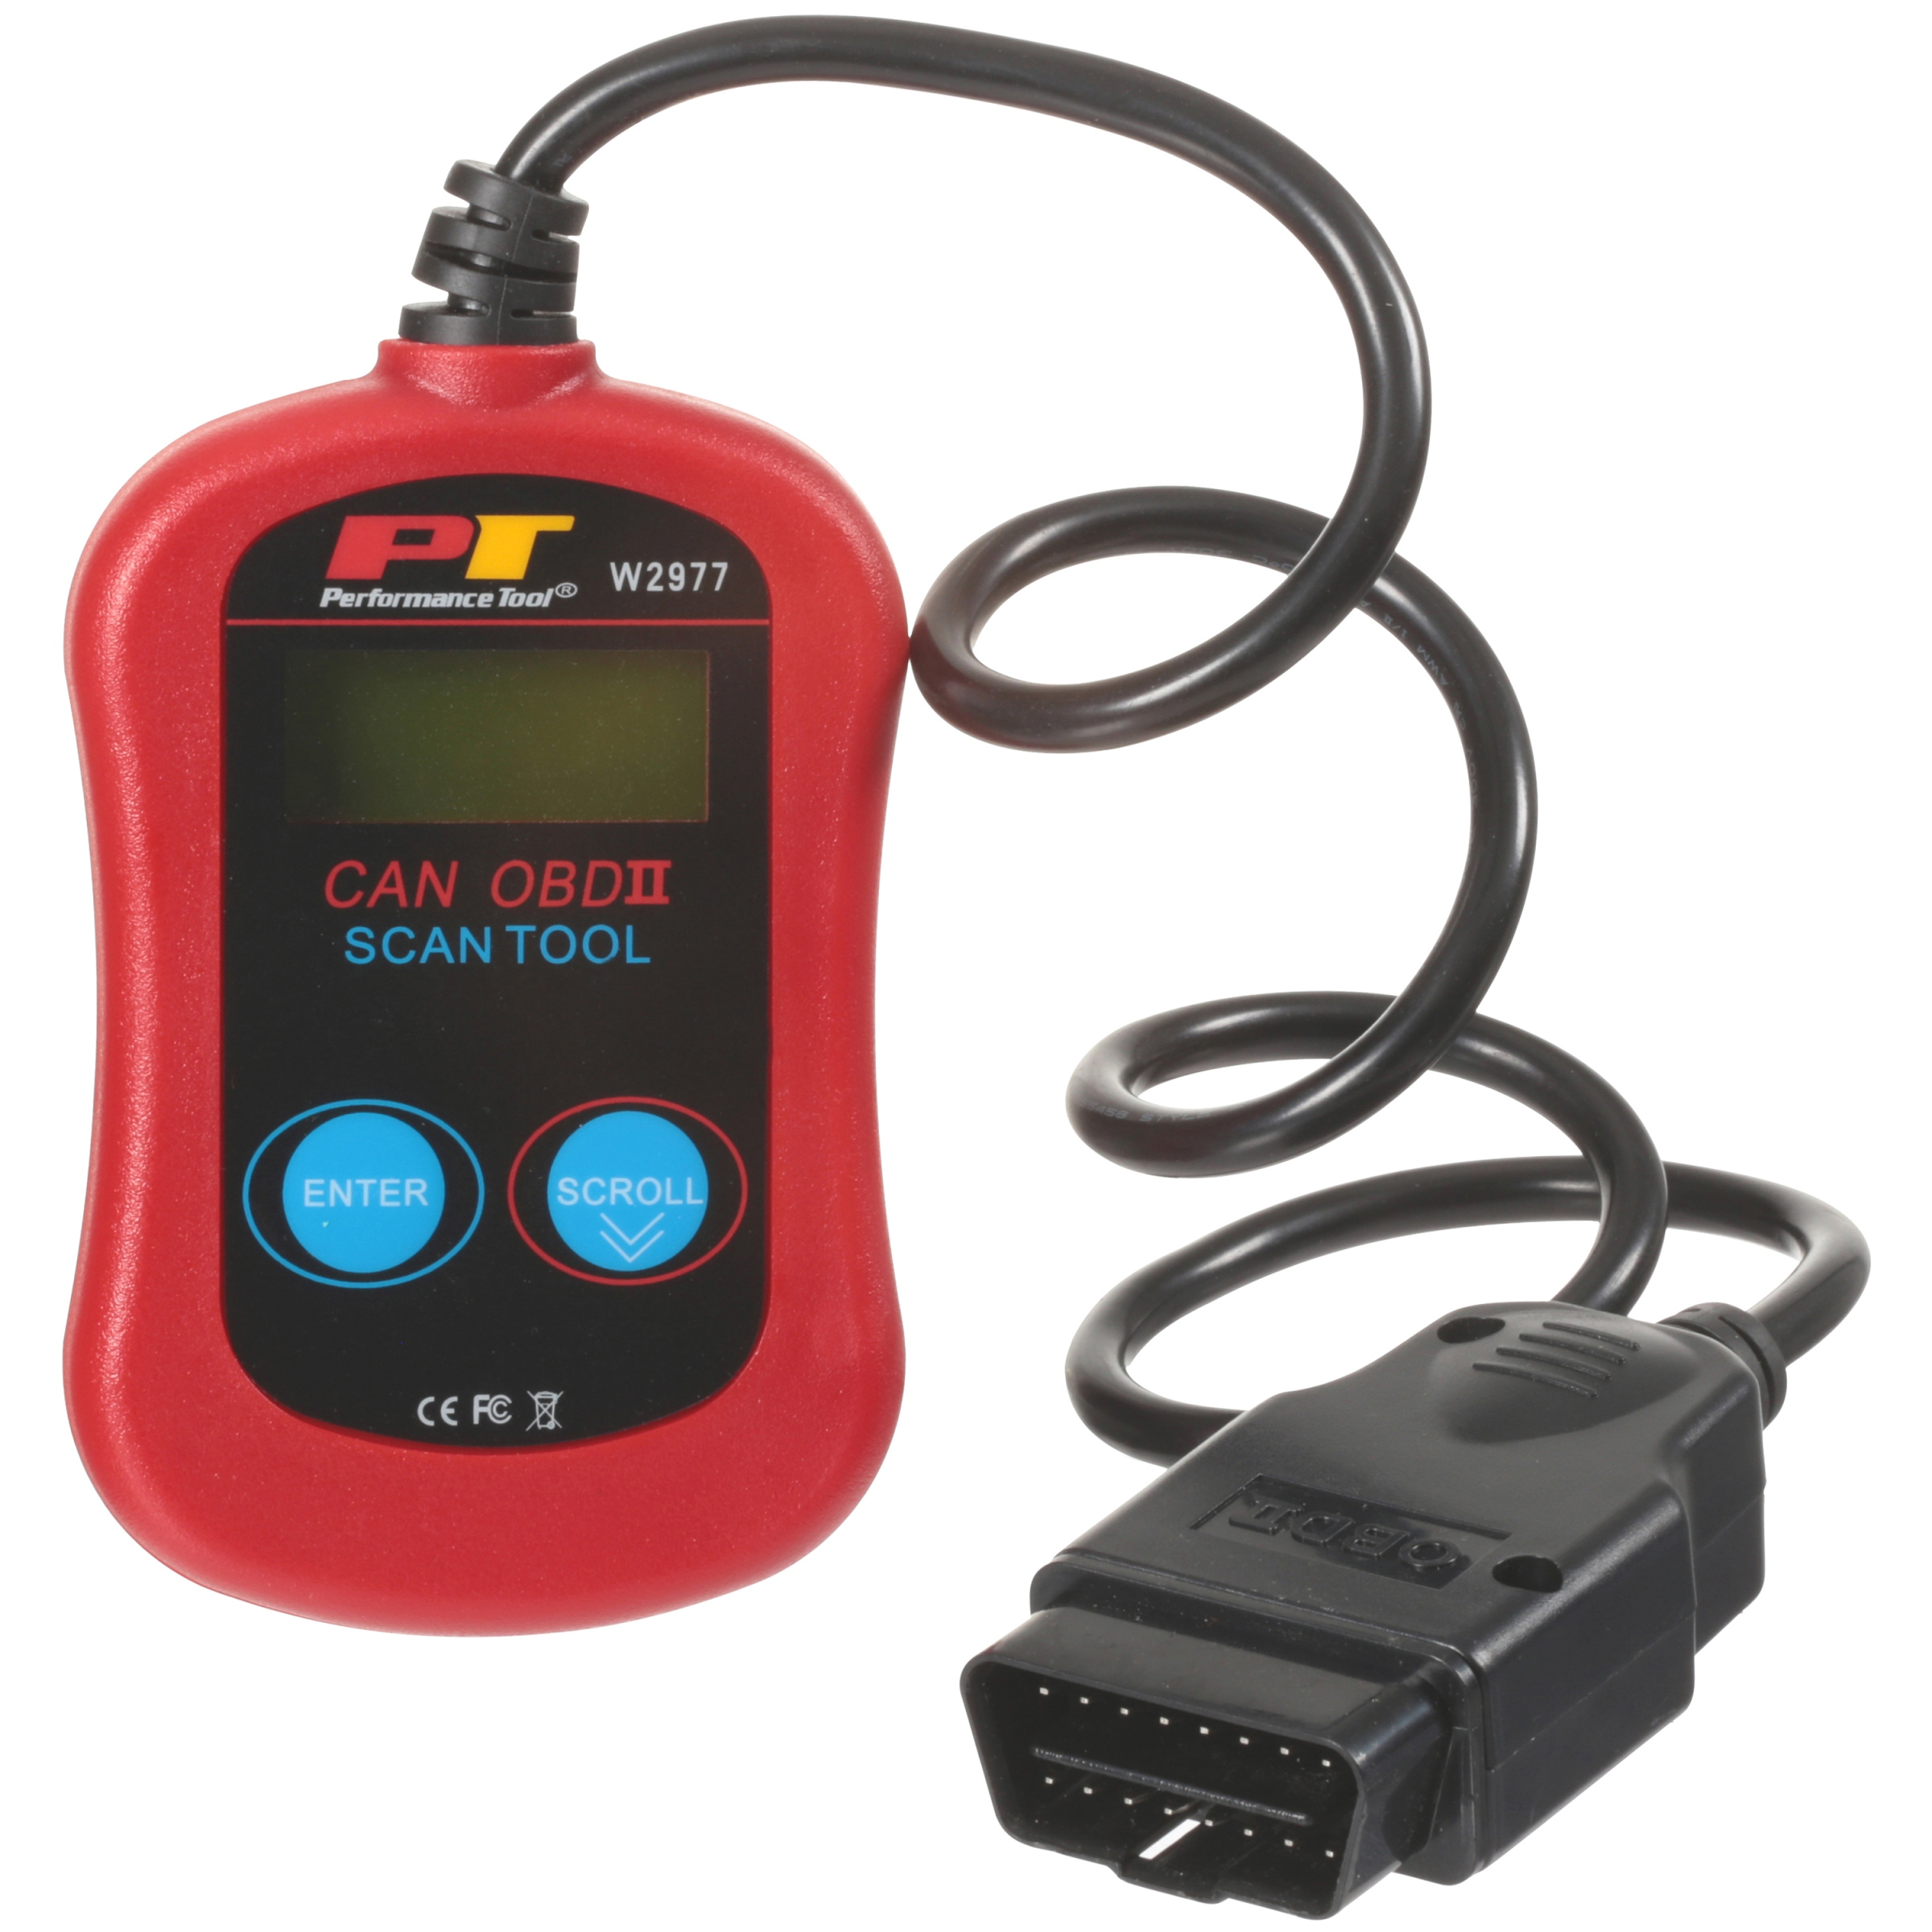 Performance Tool® CAN OBDII Diagnostic Scan Tool